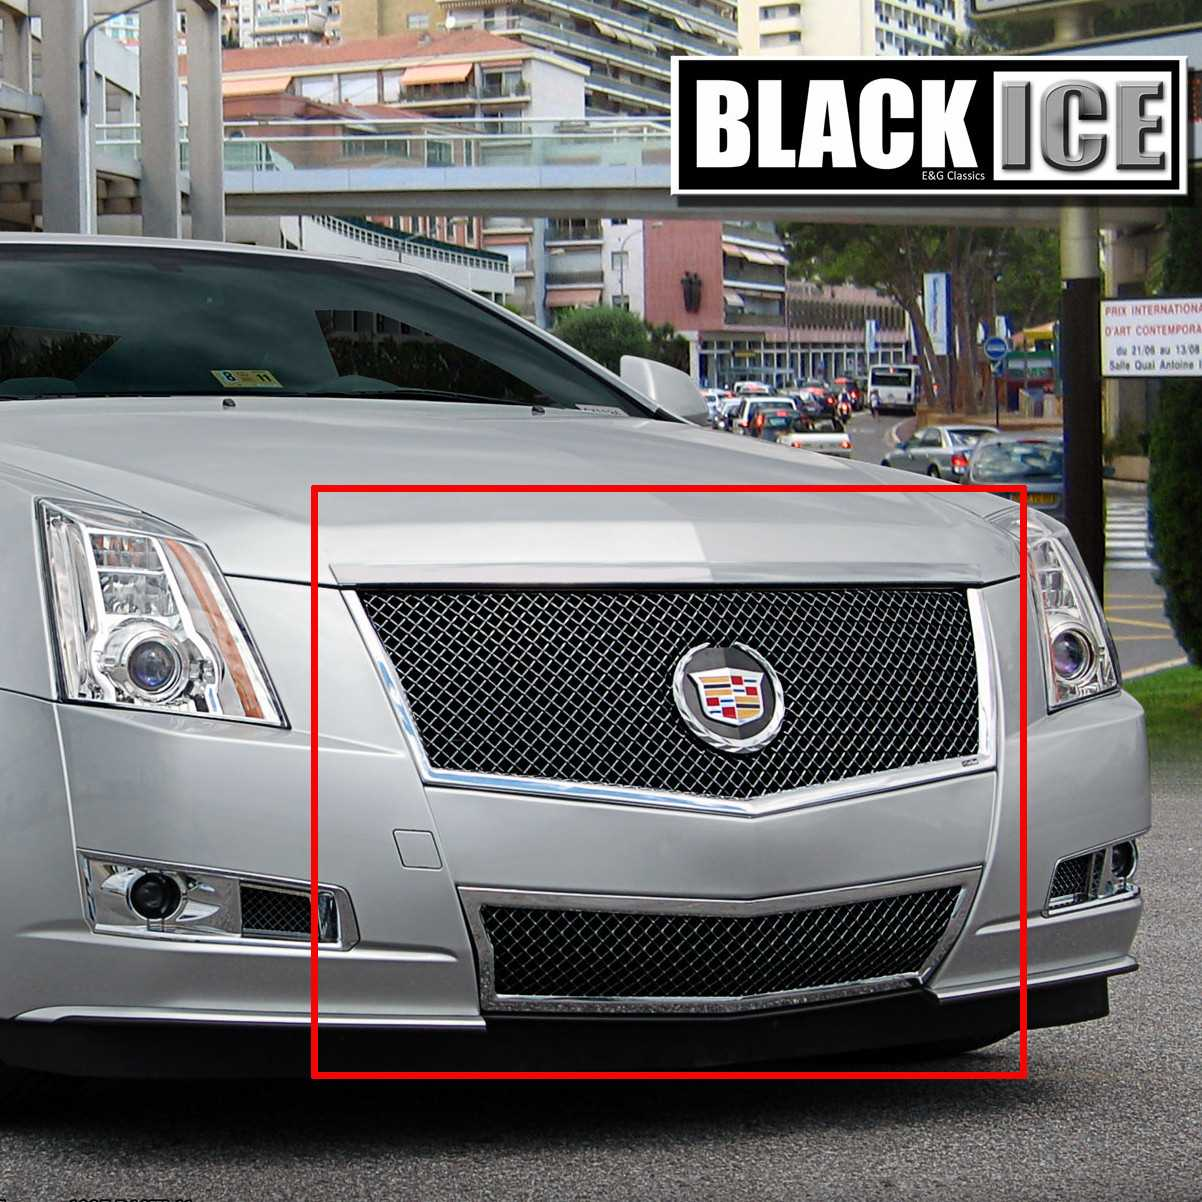 "Cadillac Cts 2013 Price: E&G Classics 2008-2013 Cadillac CTS Grille 2Pc ""E Series"" Black Ice Heavy Mesh Grille"